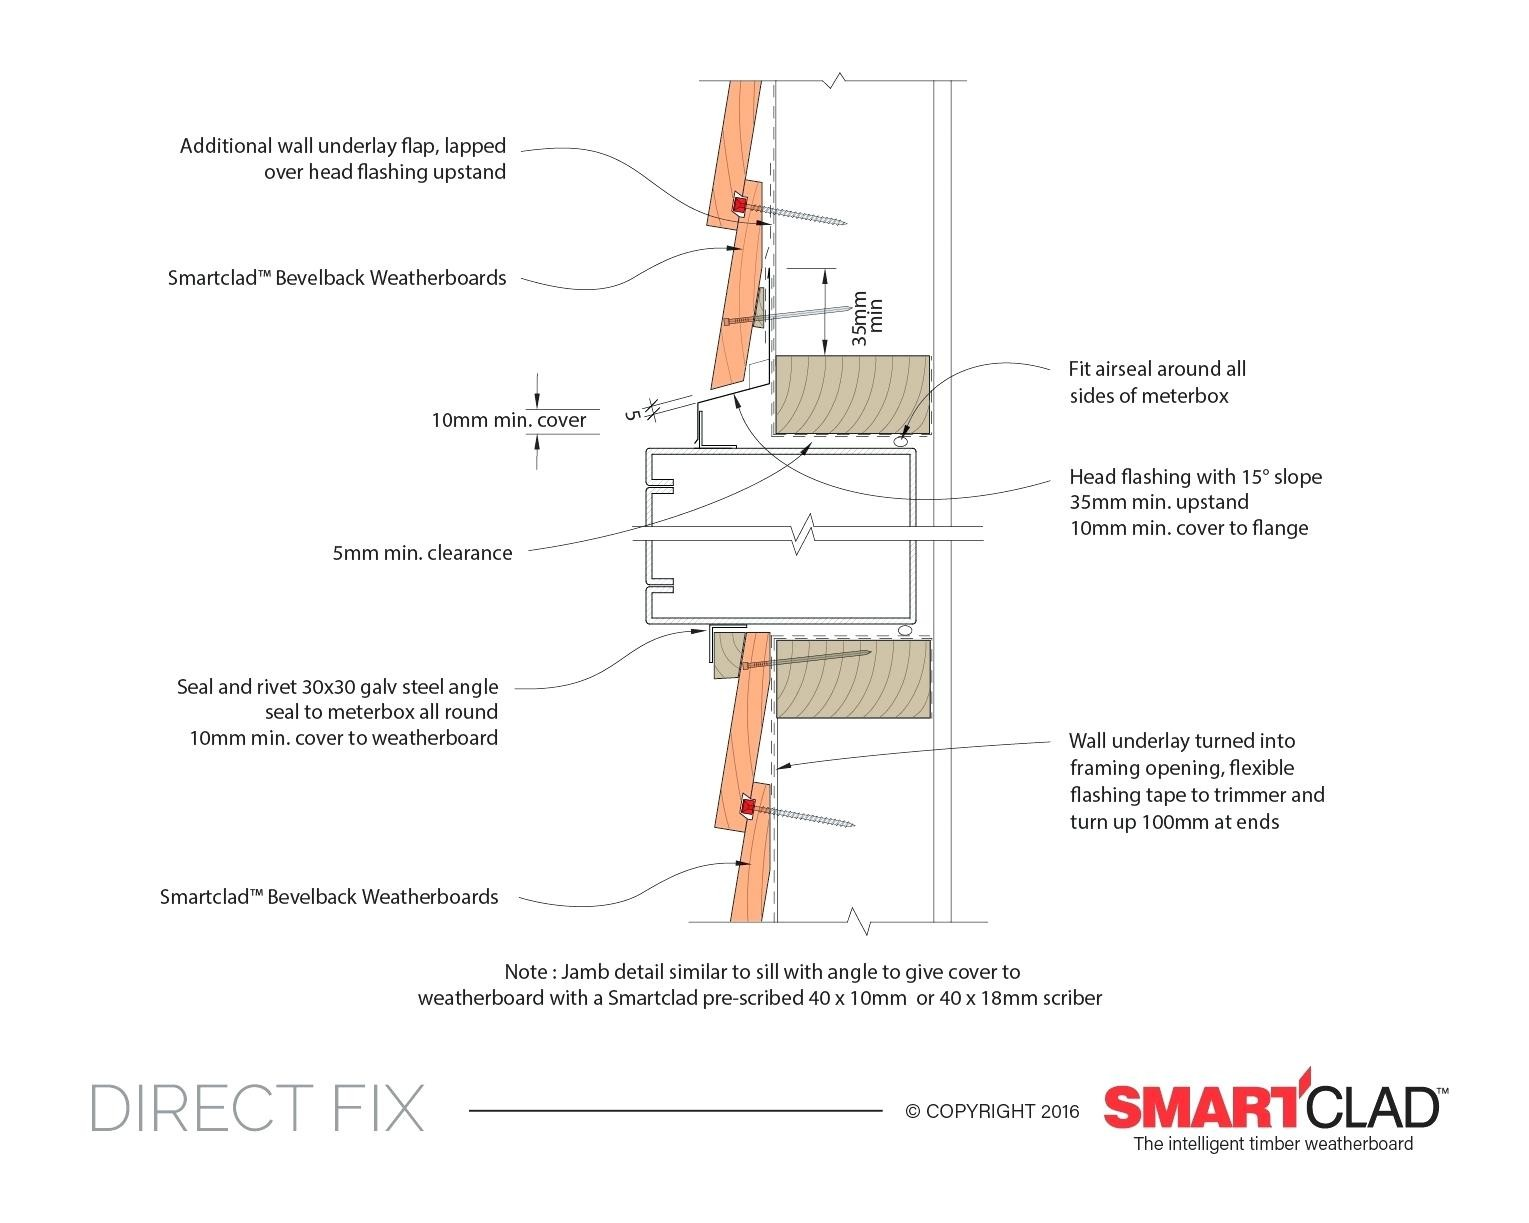 Wall phone jack wiring diagram best of wiring diagram image full size of telephone wiring diagram for broadband delightful wire phone jack wiri archived wiring asfbconference2016 Choice Image